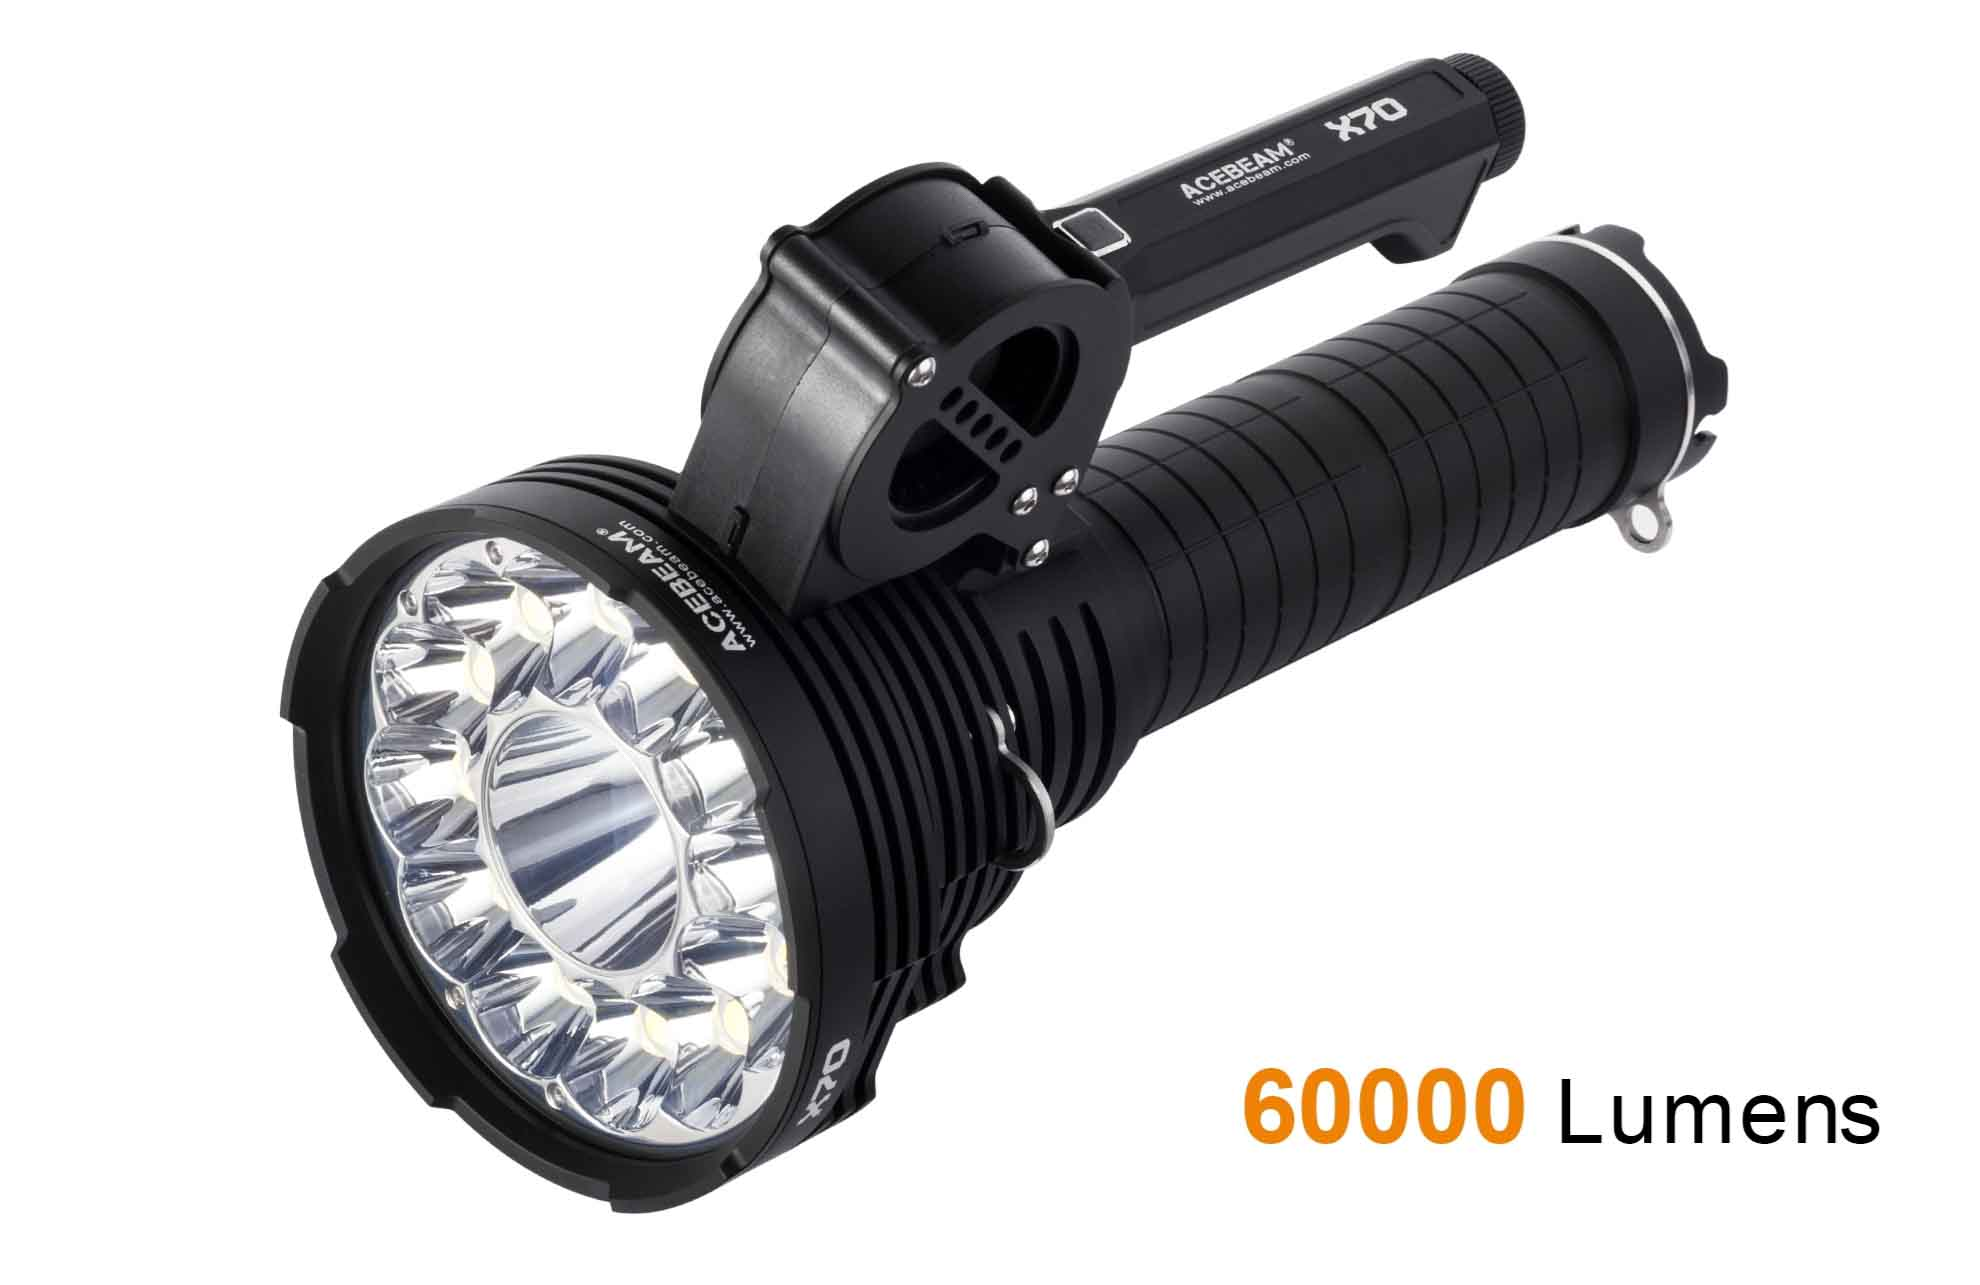 Flash Light Brightest Flashlight Of 2019 18 Top Picks By 1lumen Top Reviews